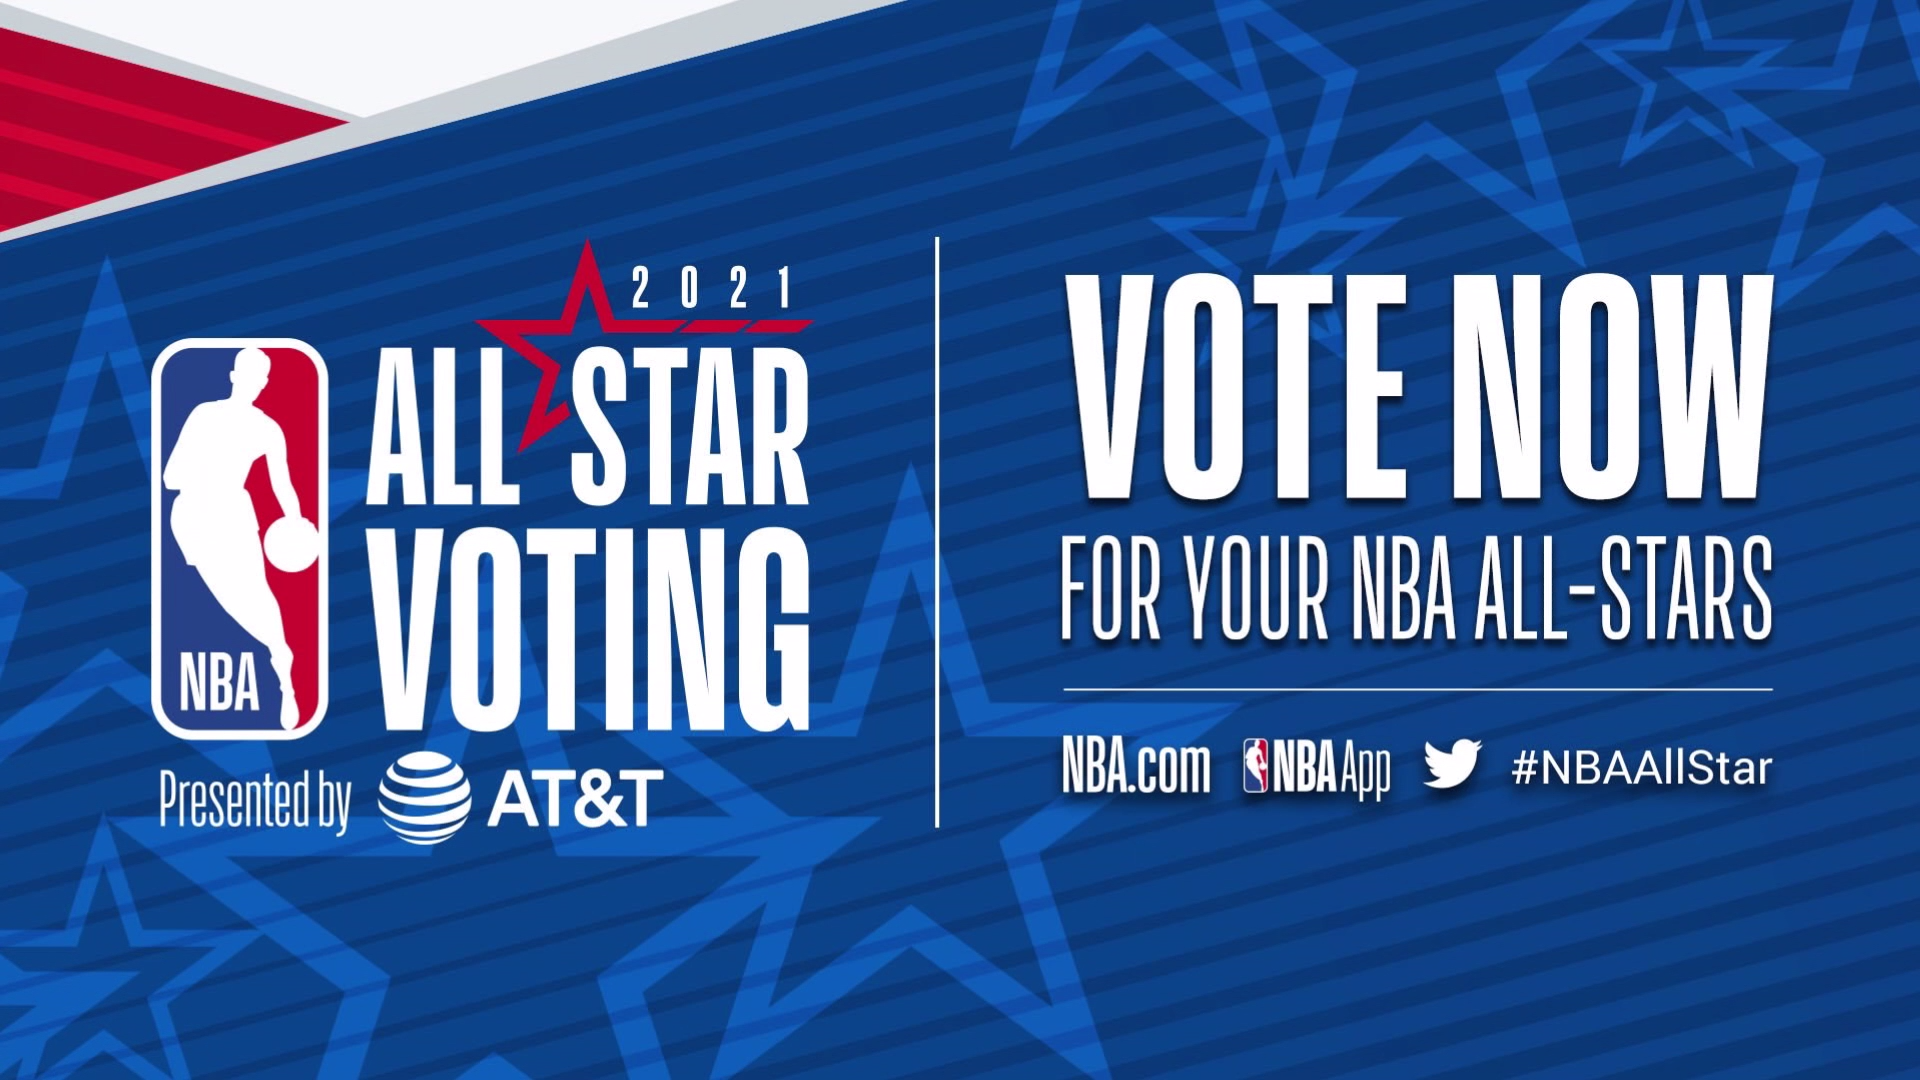 GameTime: 2021 All-Star Voting